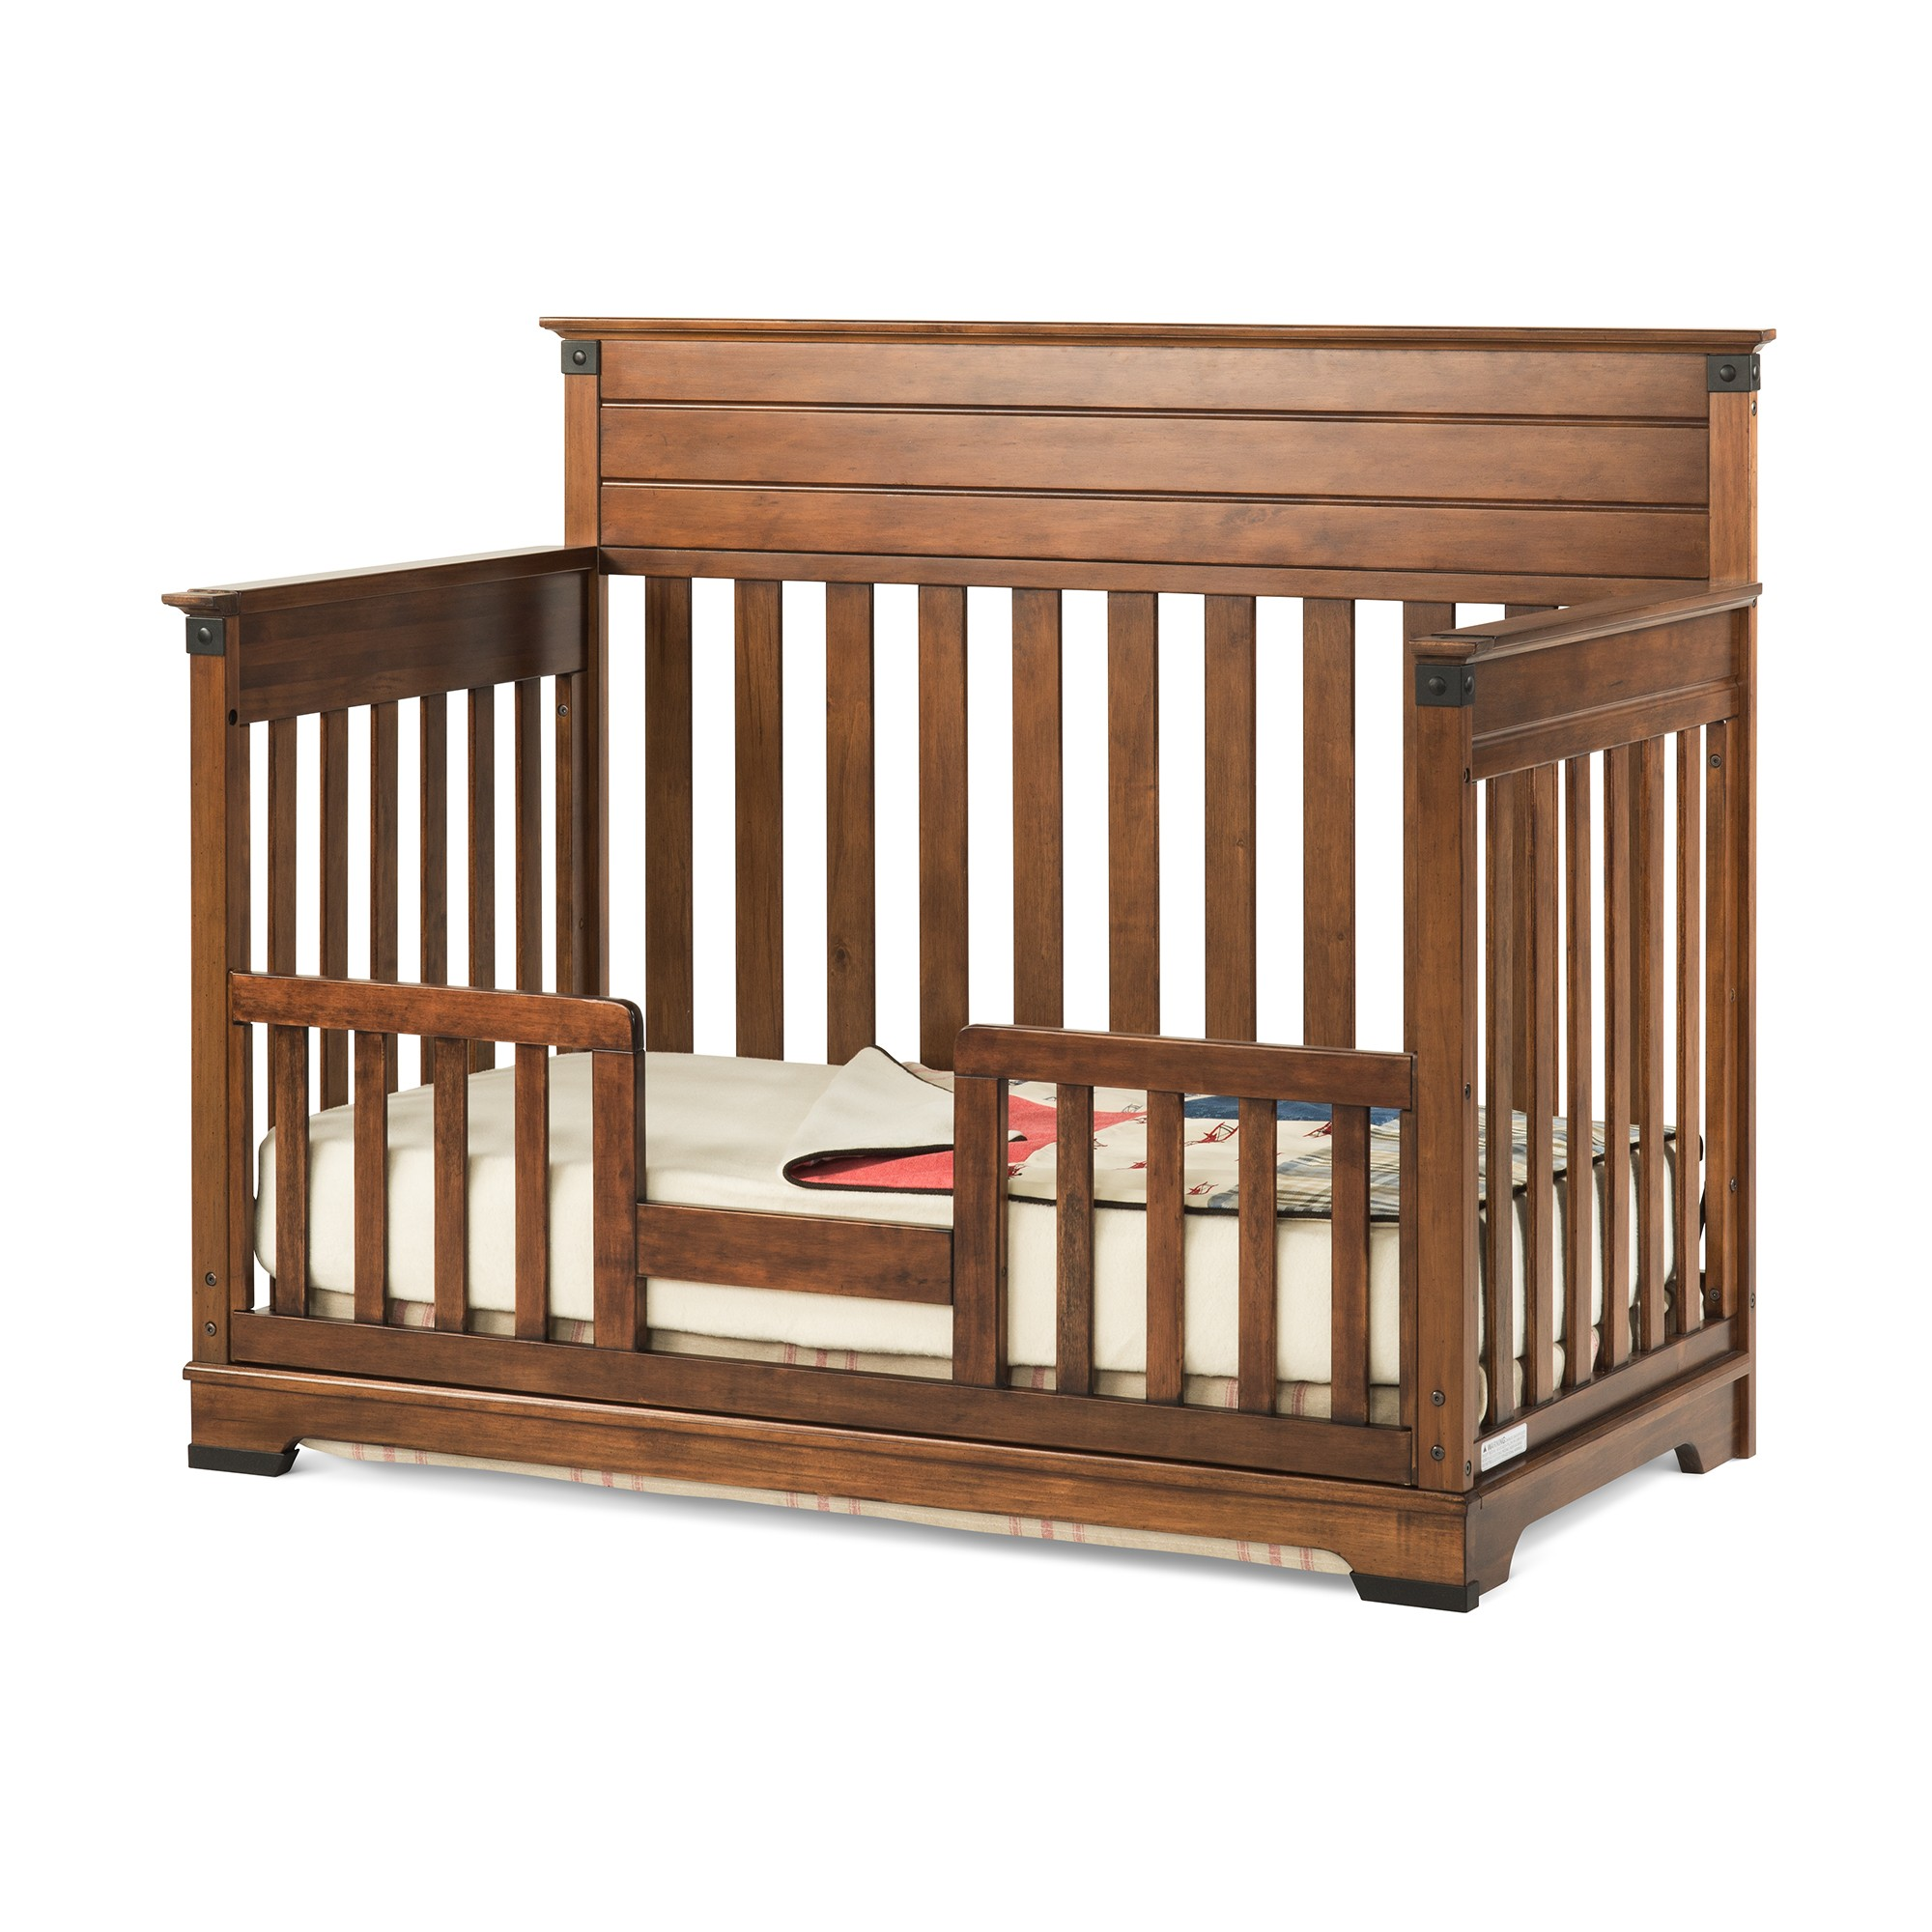 Crib Toddler Convertible 1 Bed Changing 4